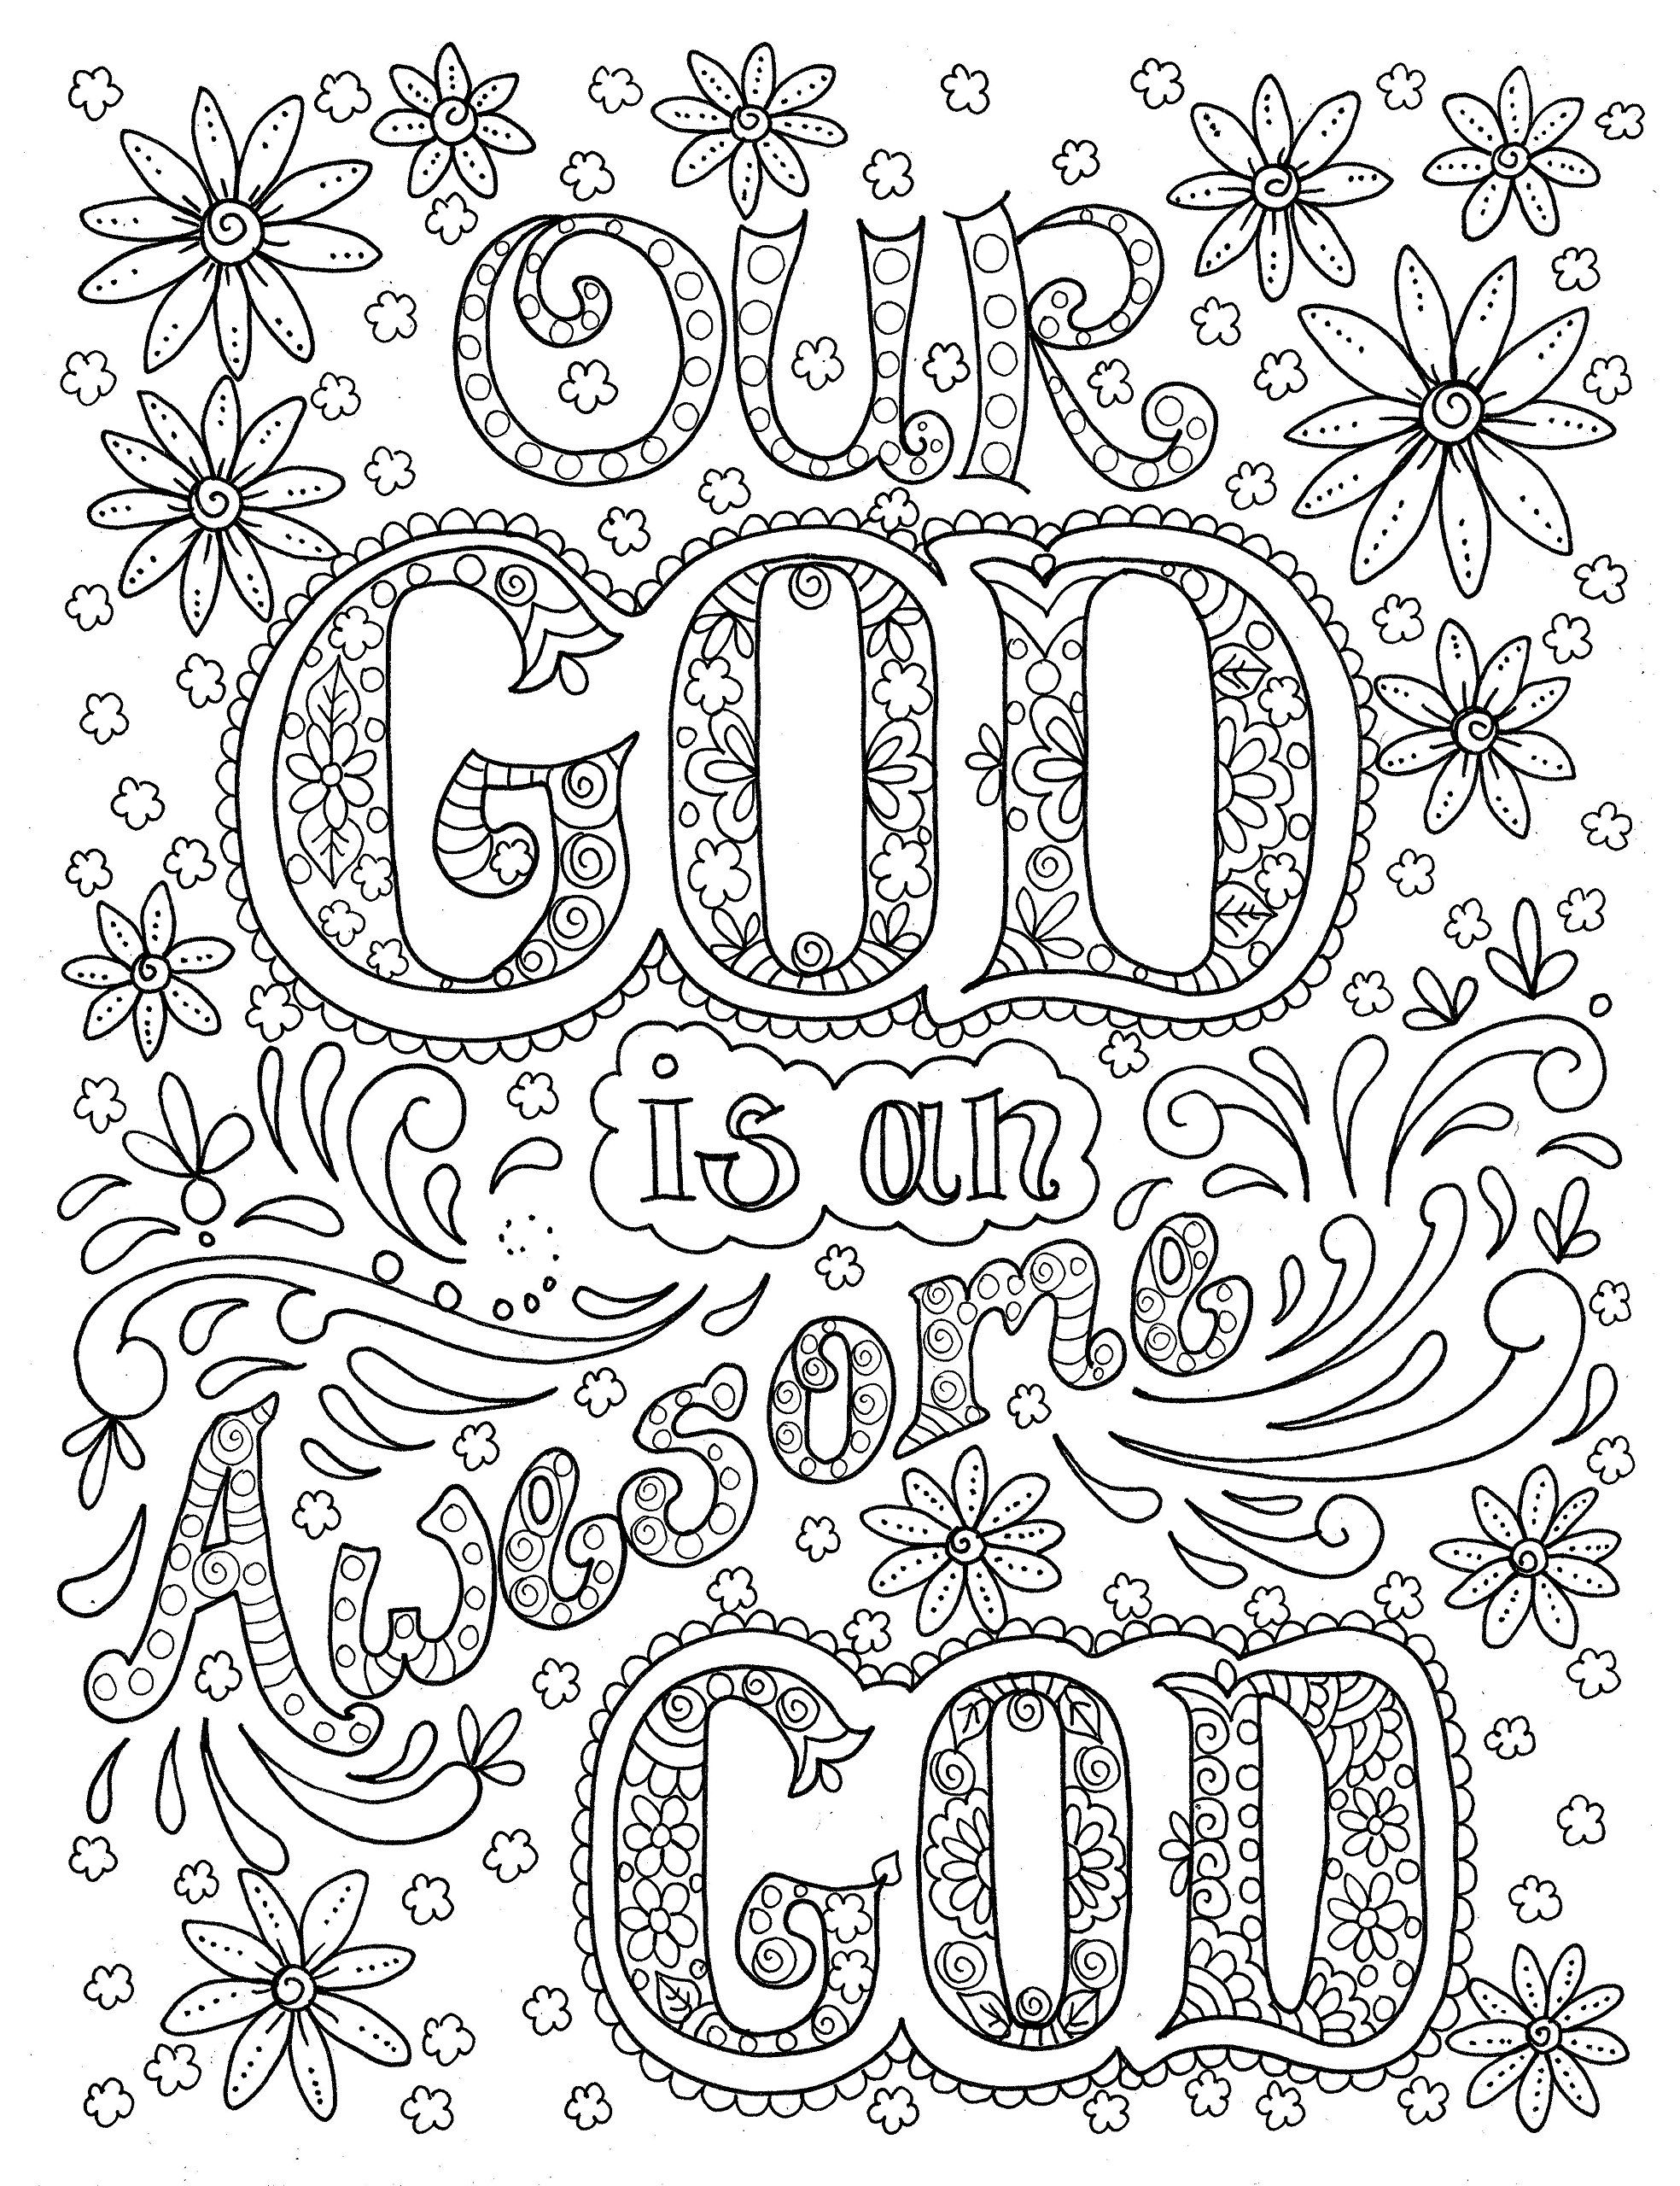 free printable bible coloring pages for children free printable christian bible colouring pages for kids for bible free children printable pages coloring